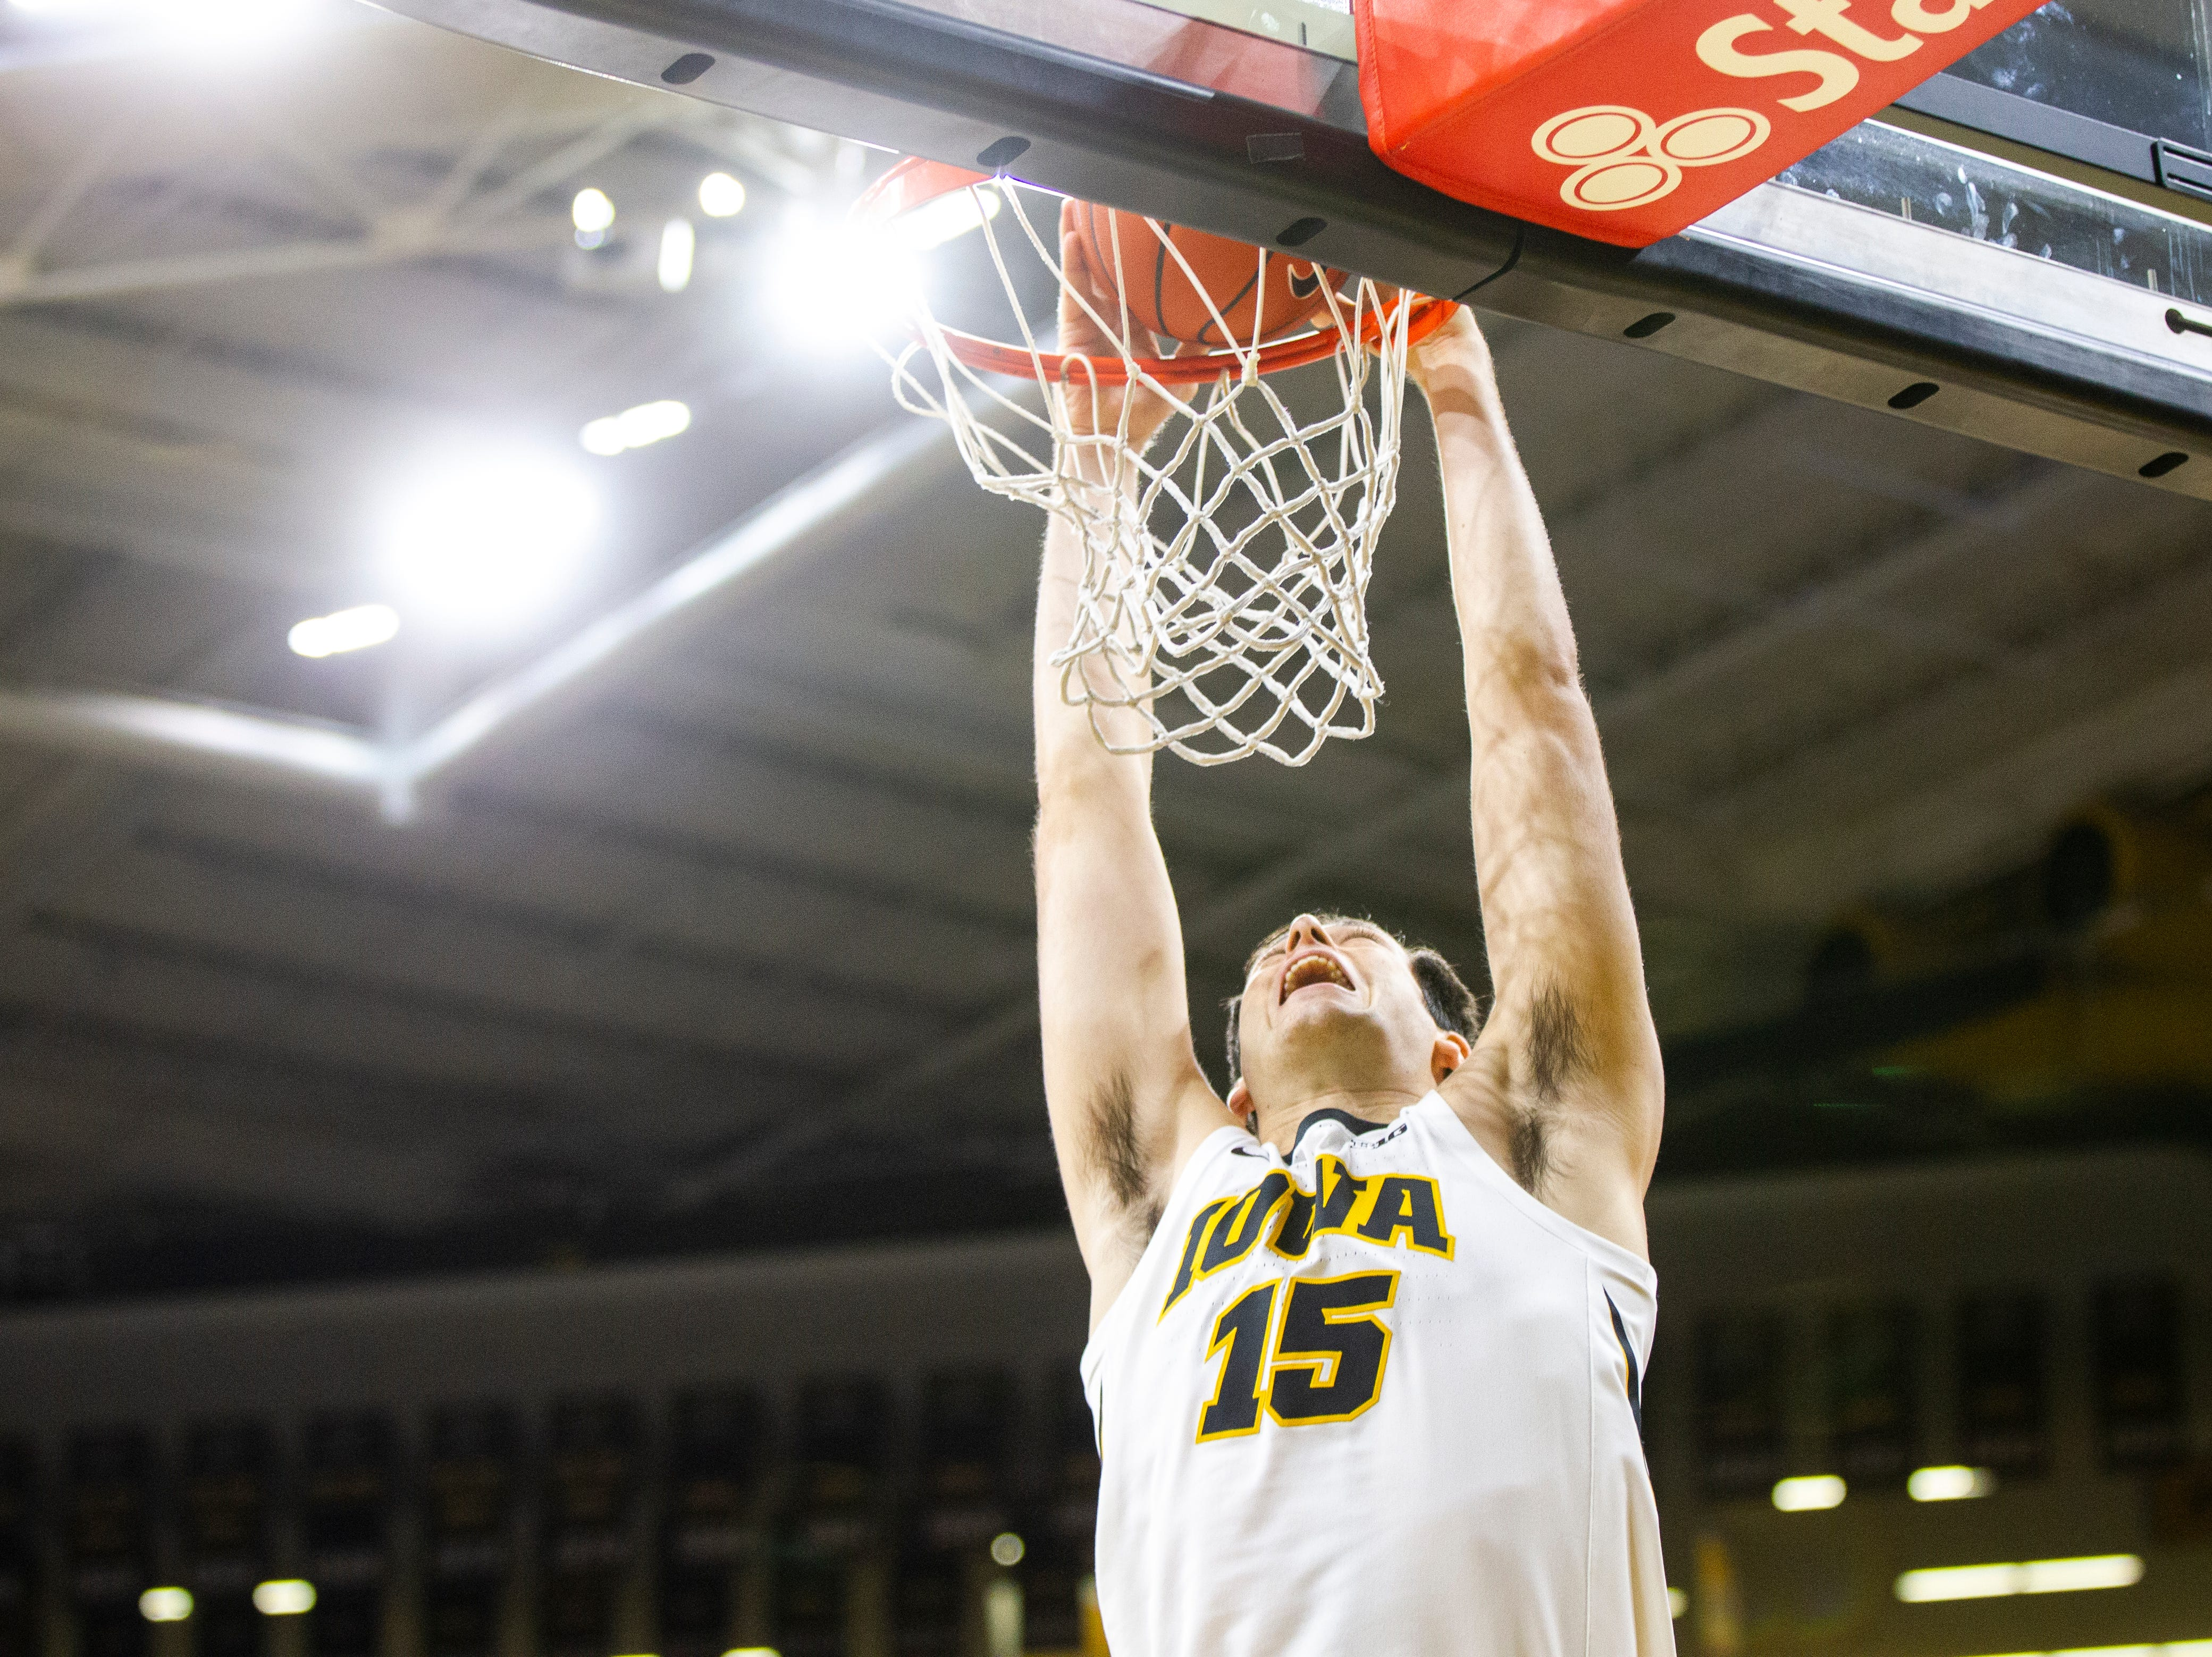 Iowa forward Ryan Kriener (15) dunks during men's basketball exhibition game on Sunday, Nov. 4, 2018, at Carver-Hawkeye Arena in Iowa City.